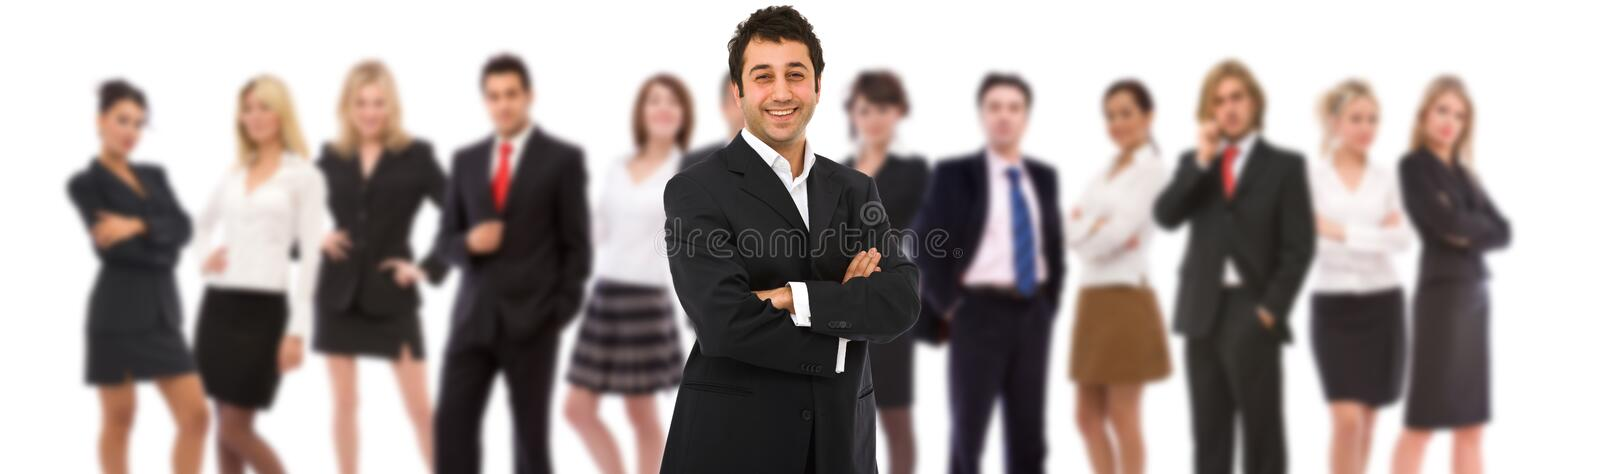 Big Business Team Royalty Free Stock Photo